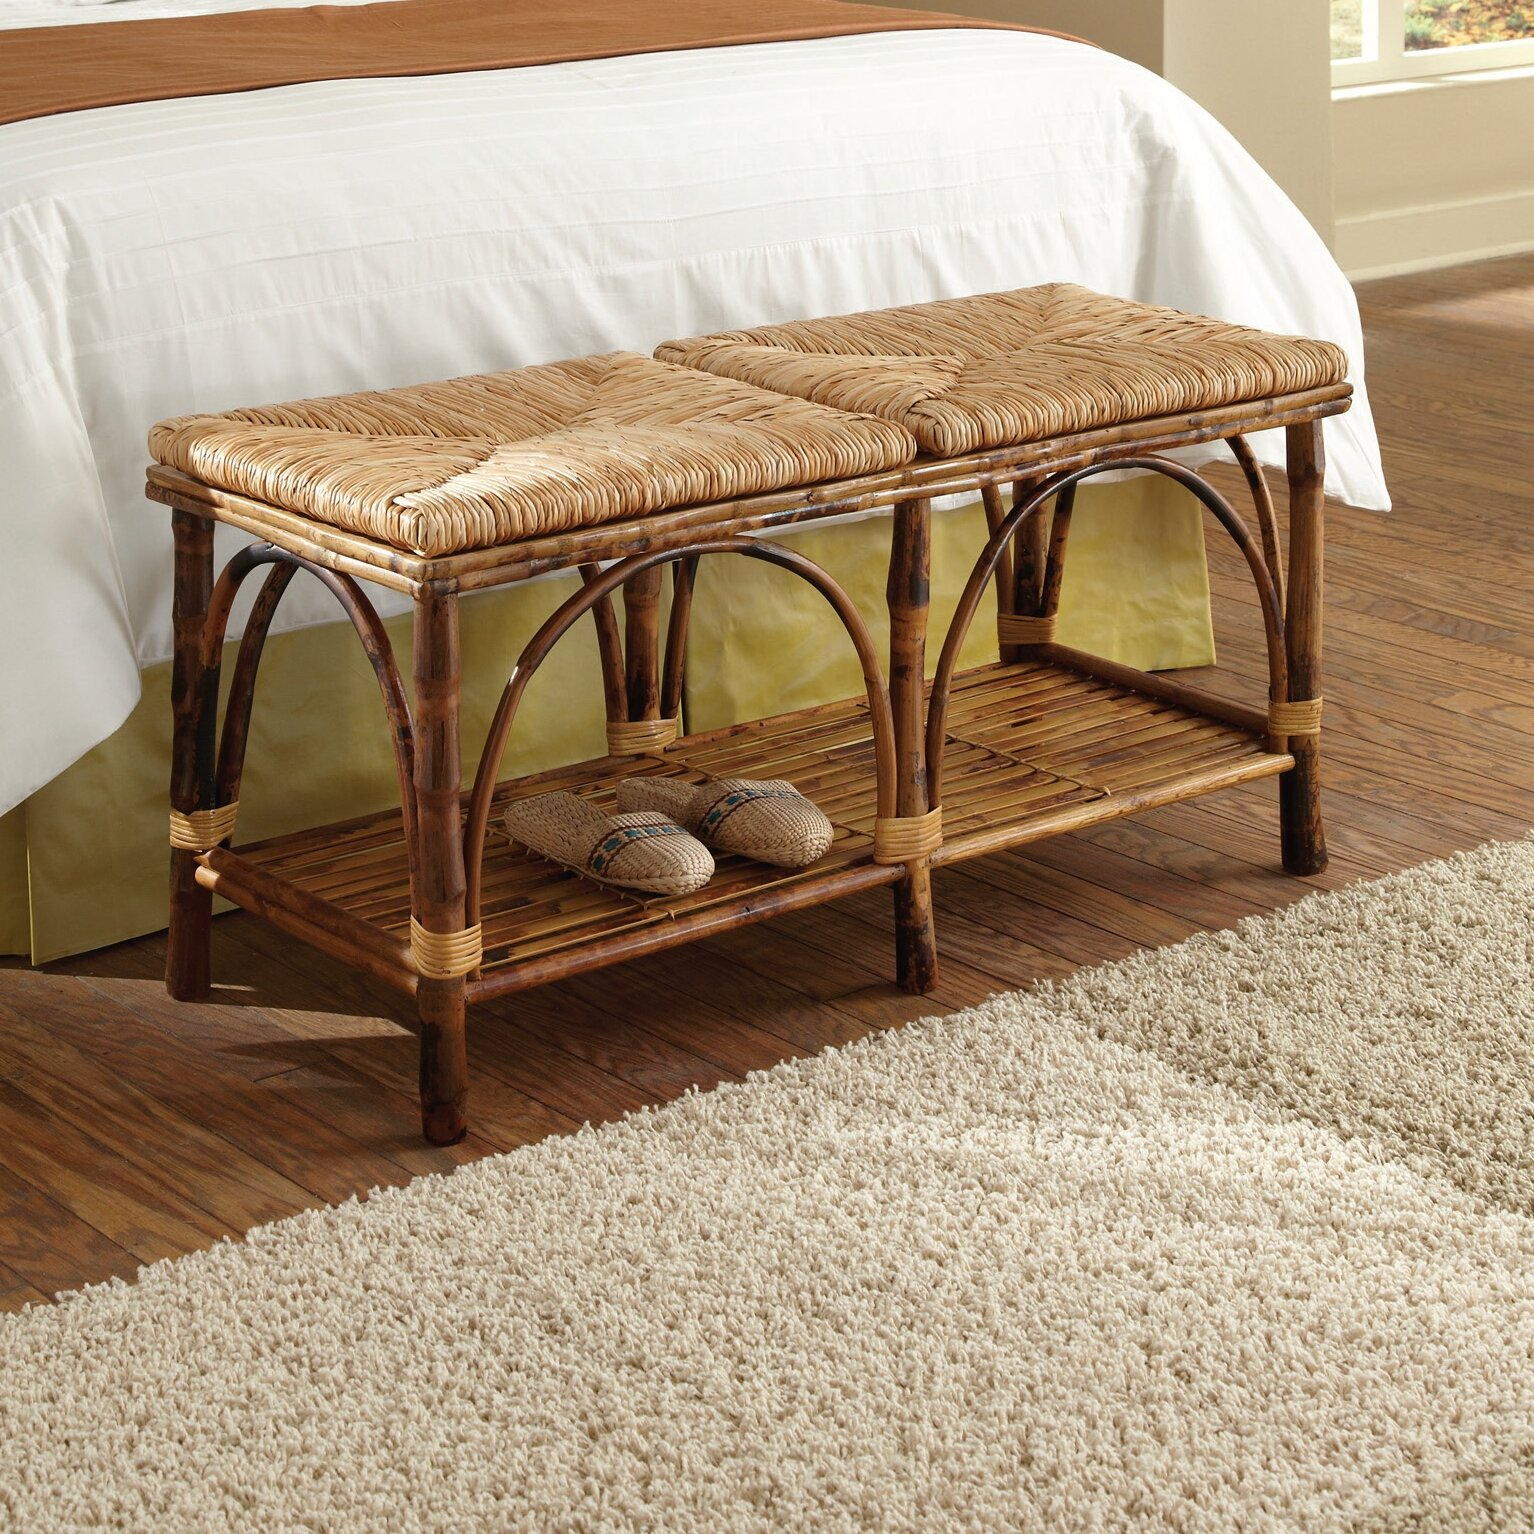 Kenian Coastal Chic Rattan Bedroom Bench Reviews Wayfair